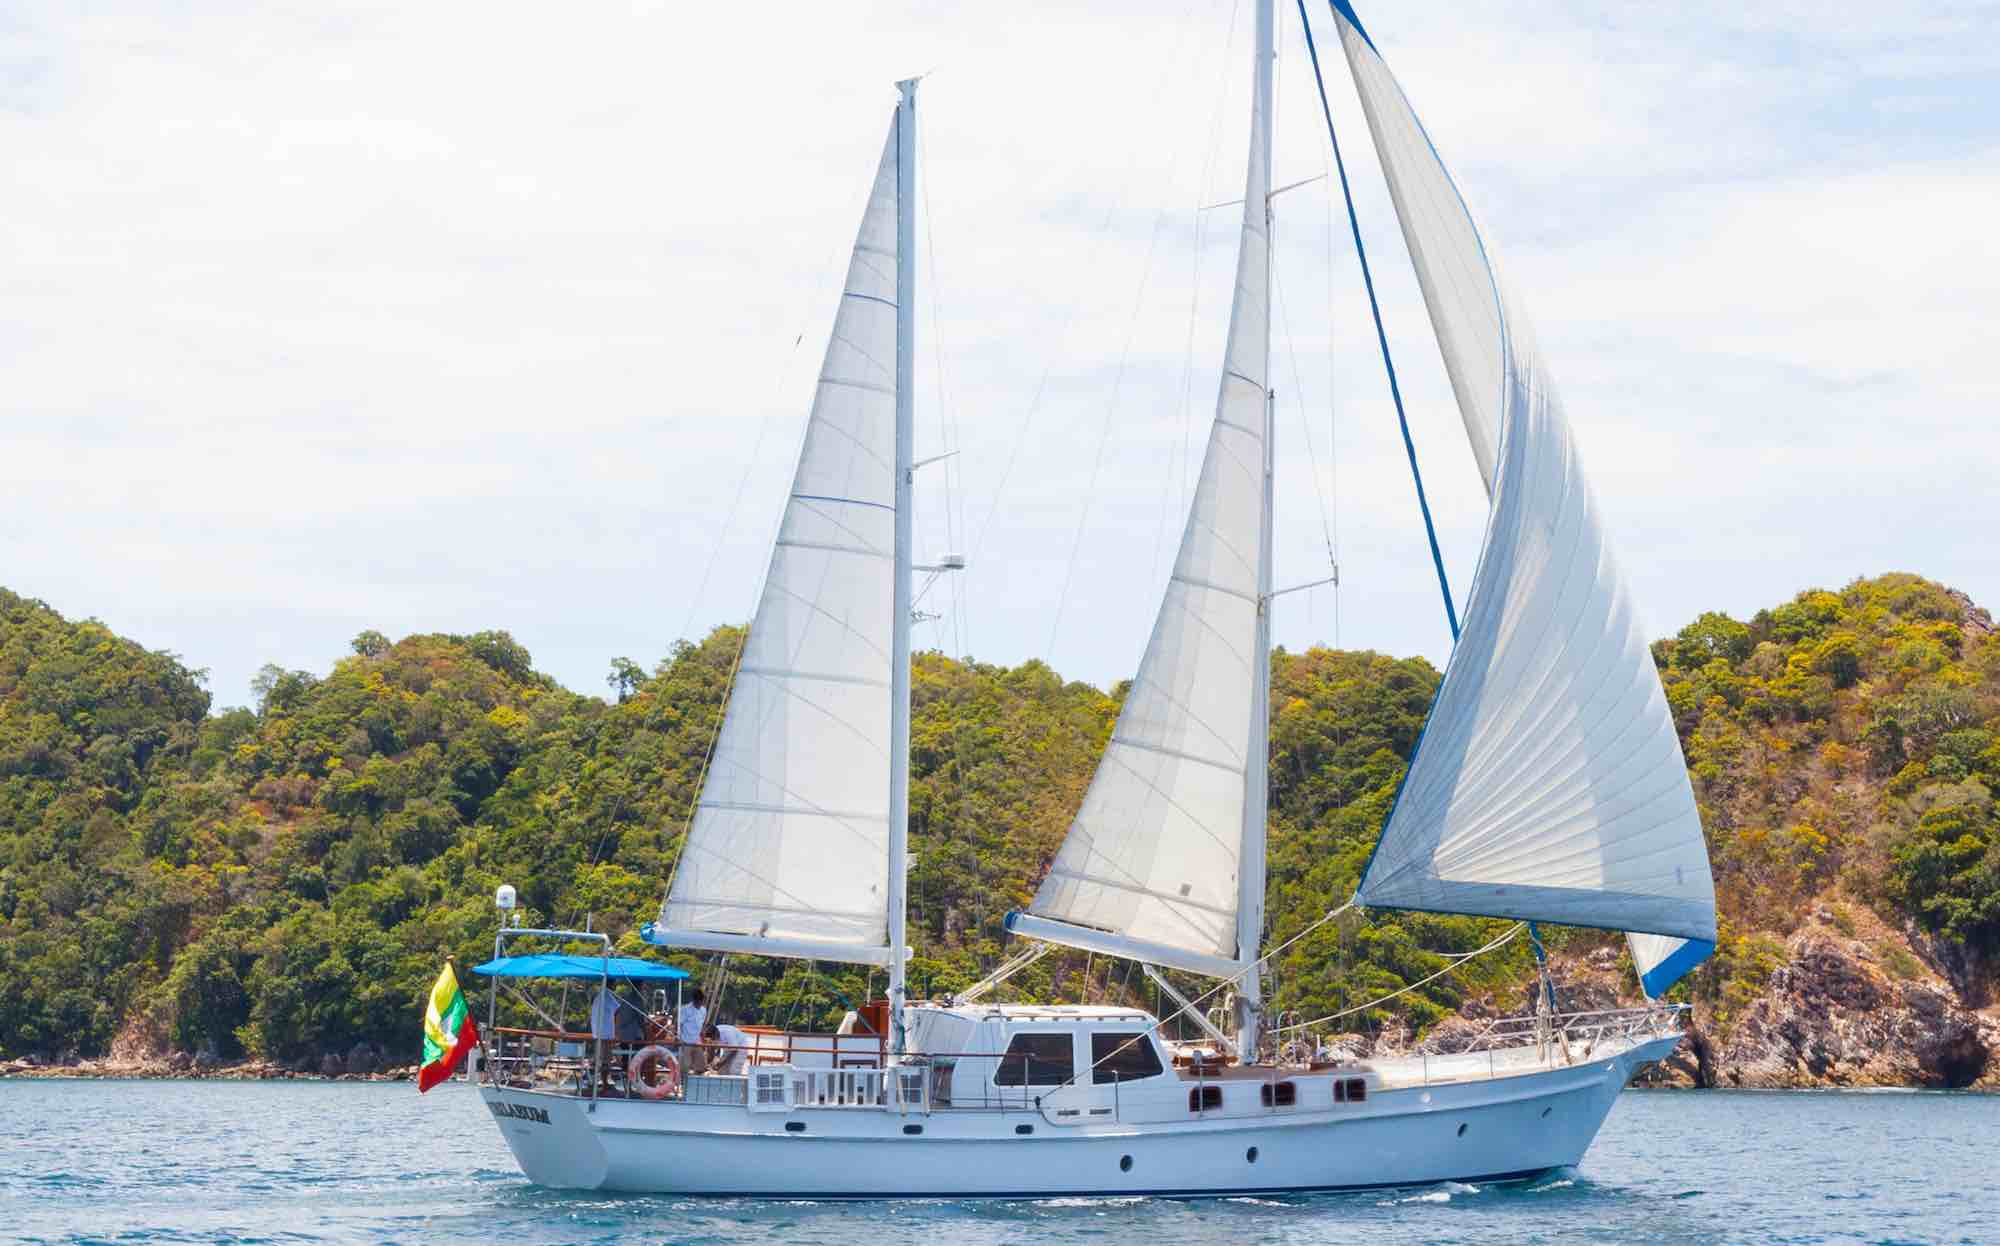 Jubilaeum_sailing along beautiful island in Mergui Archipelago_XS.jpeg